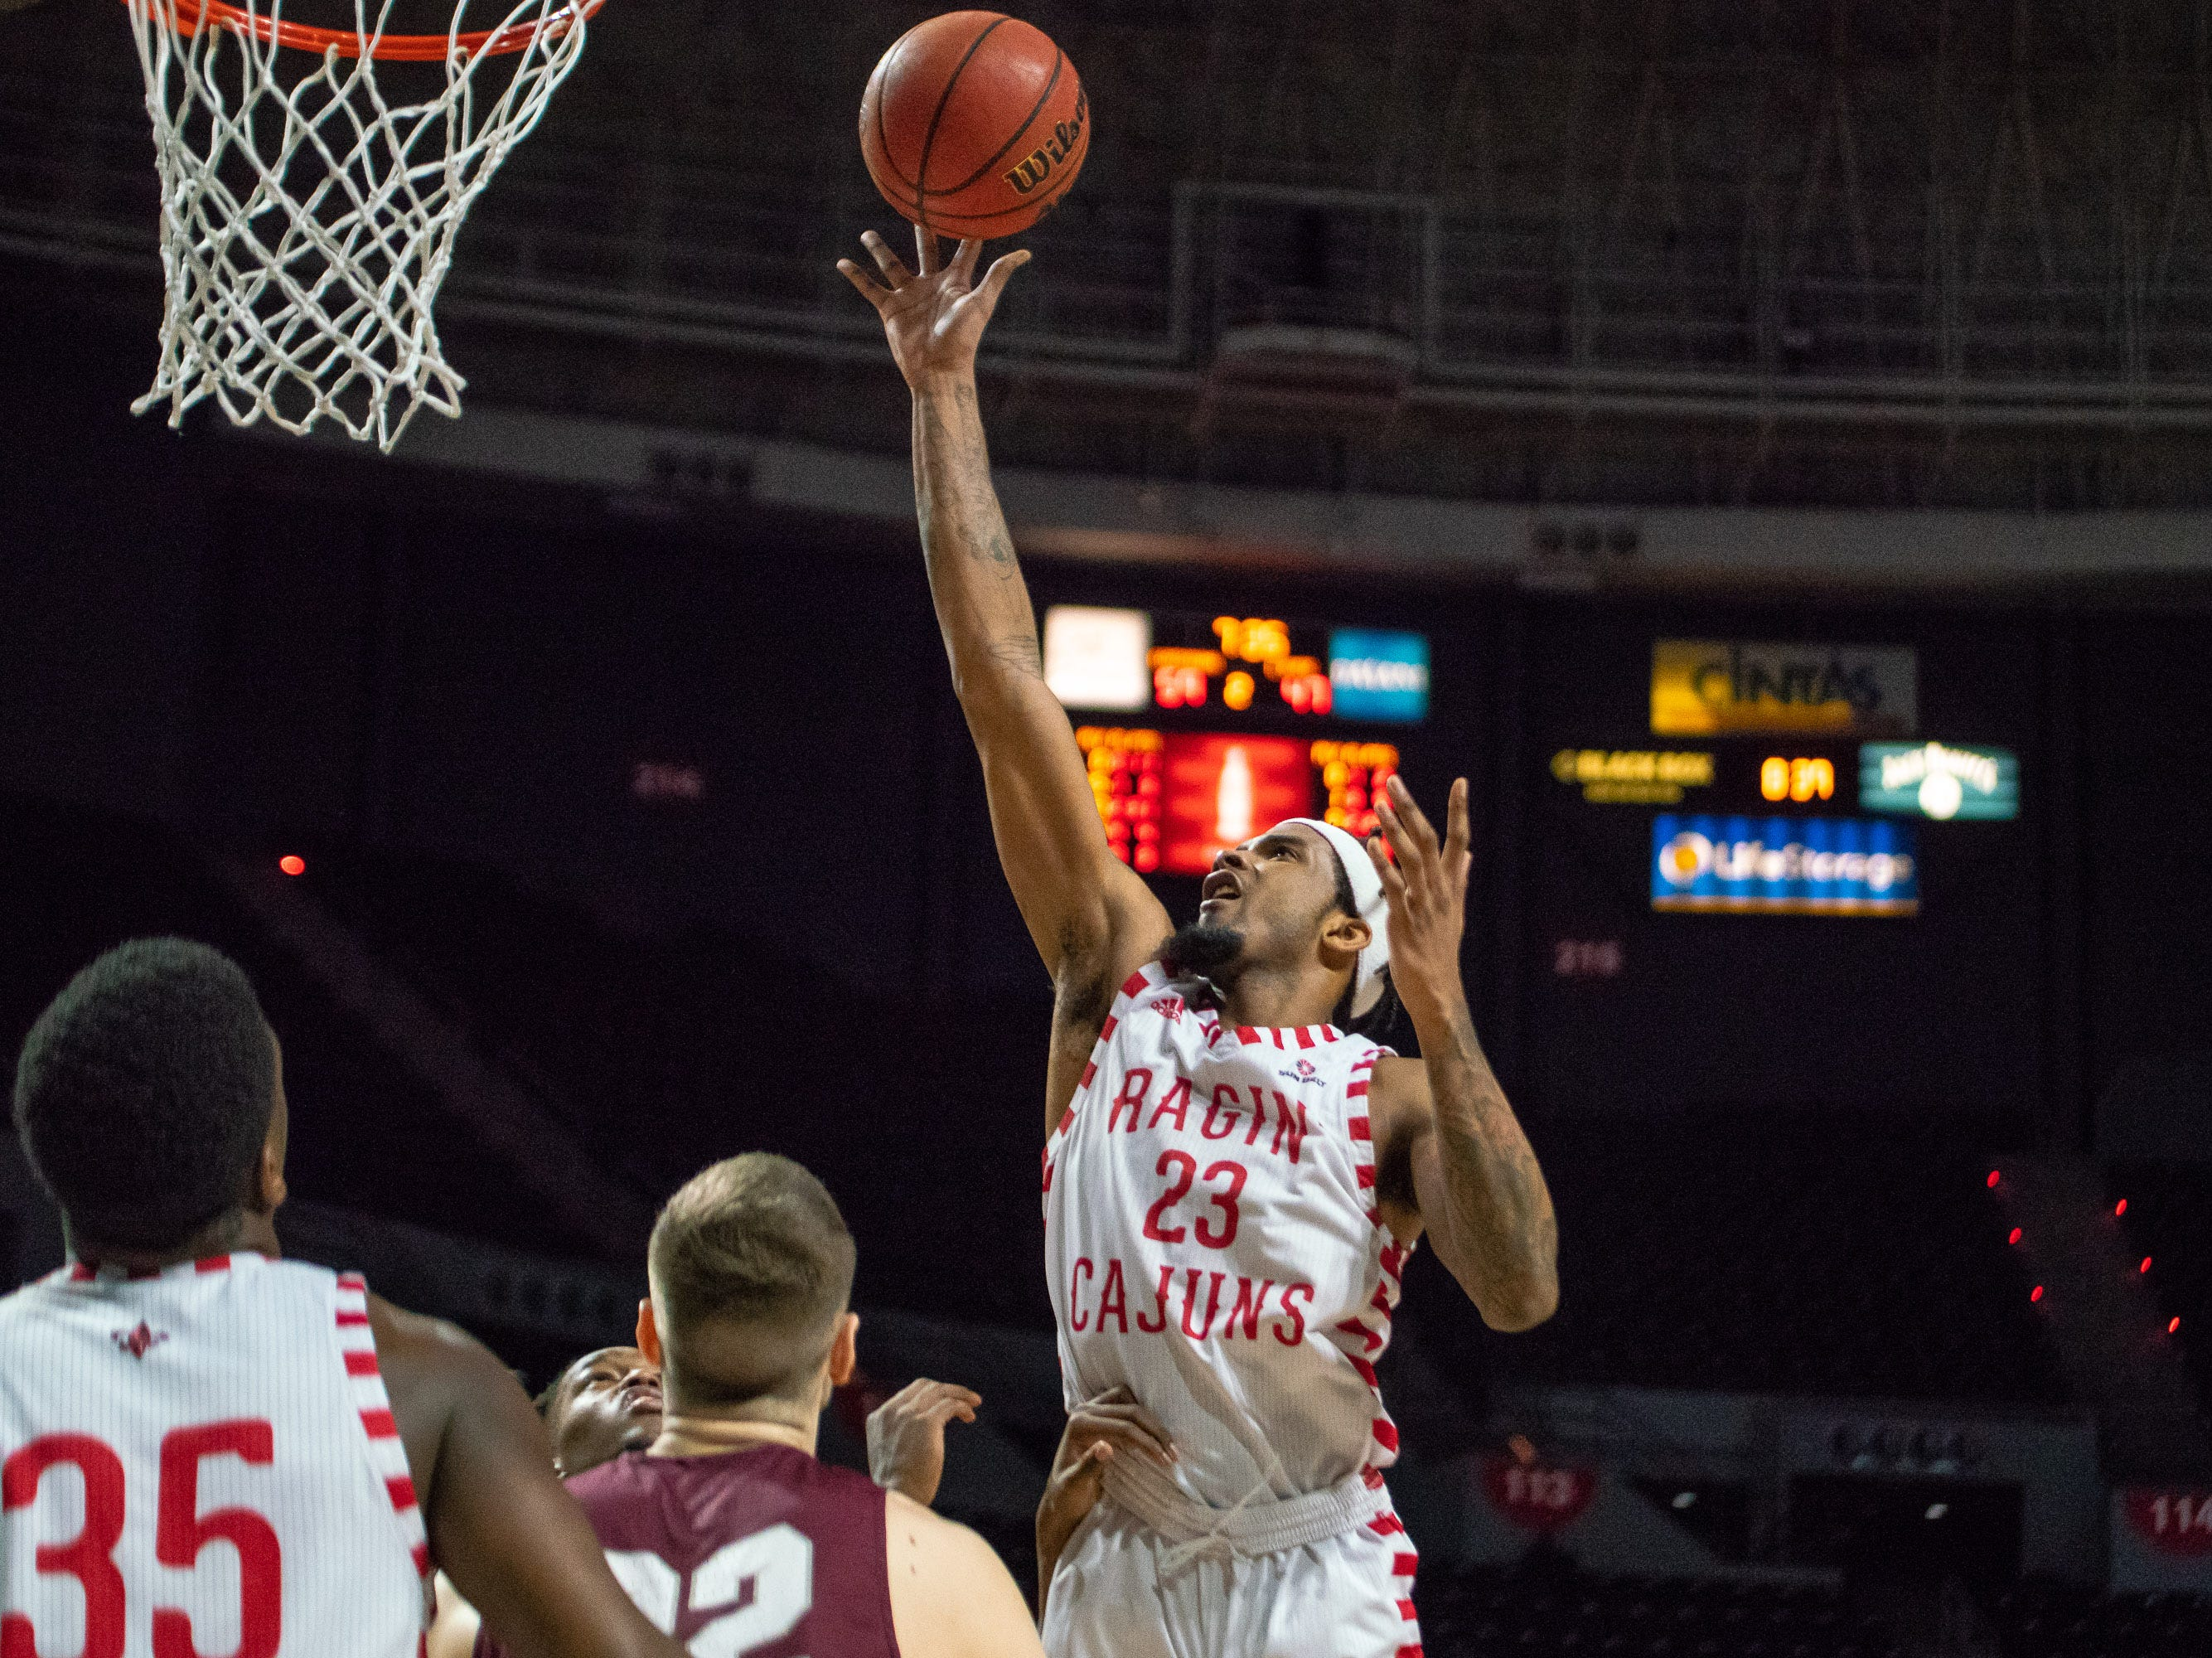 UL's Jakeenan Gant goes up to the goal to score as the Ragin' Cajuns take on the Little Rock Trojans at the Cajundome on January 5, 2019.